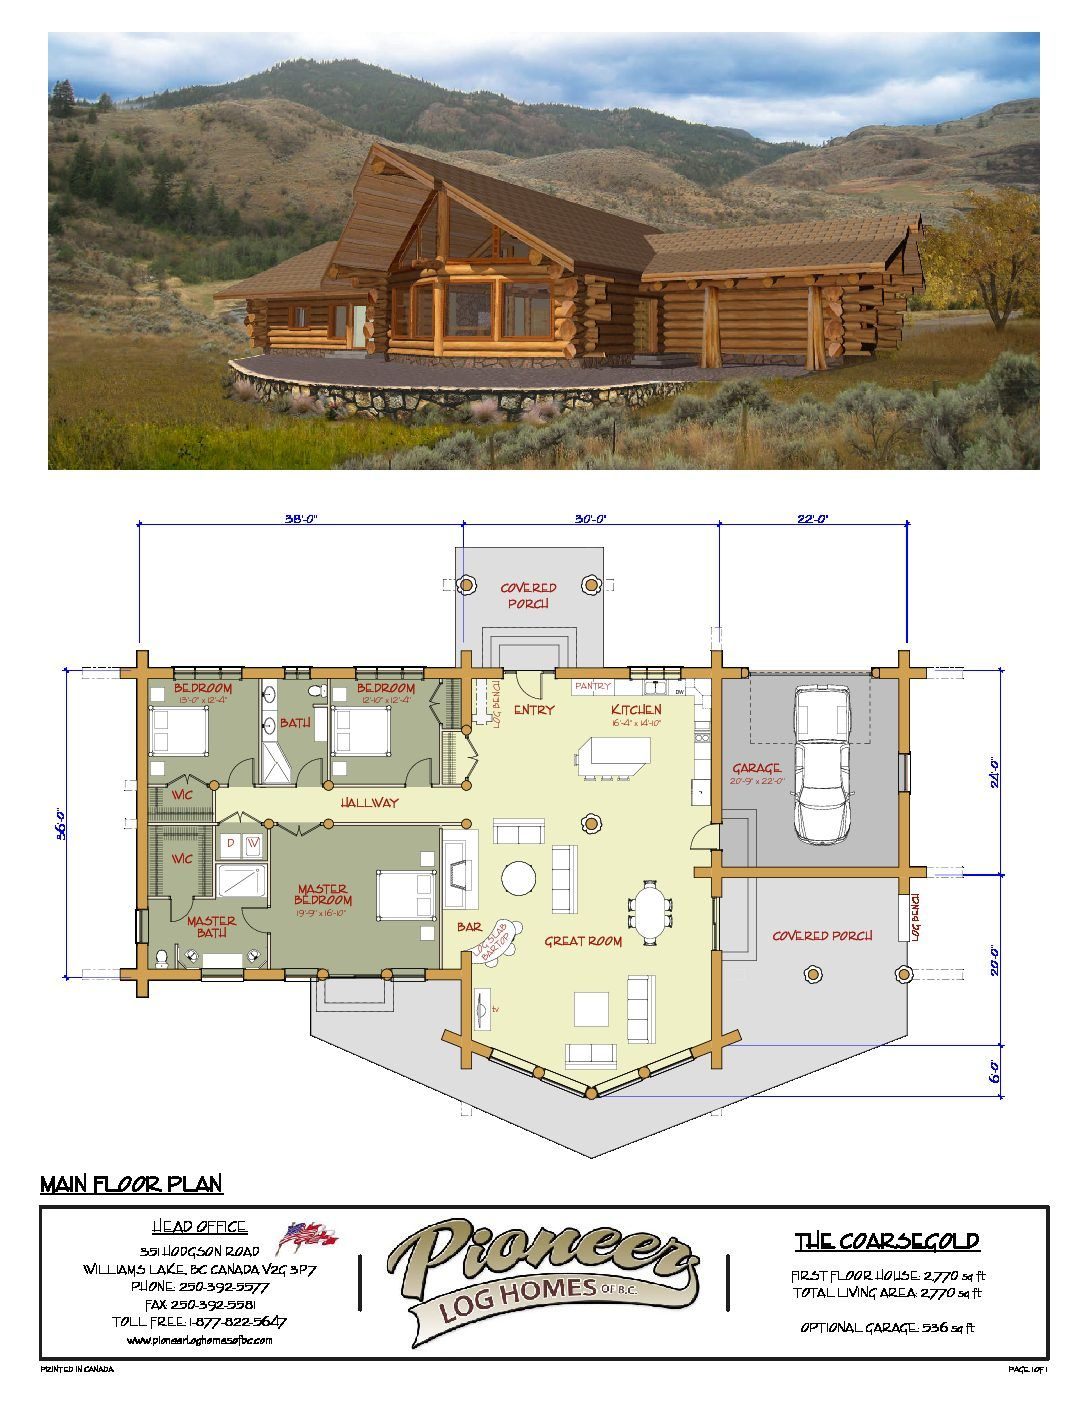 Coarsegold Pioneer Log Homes Midwest Log Home Floor Plans Lake House Plans Cabin House Plans